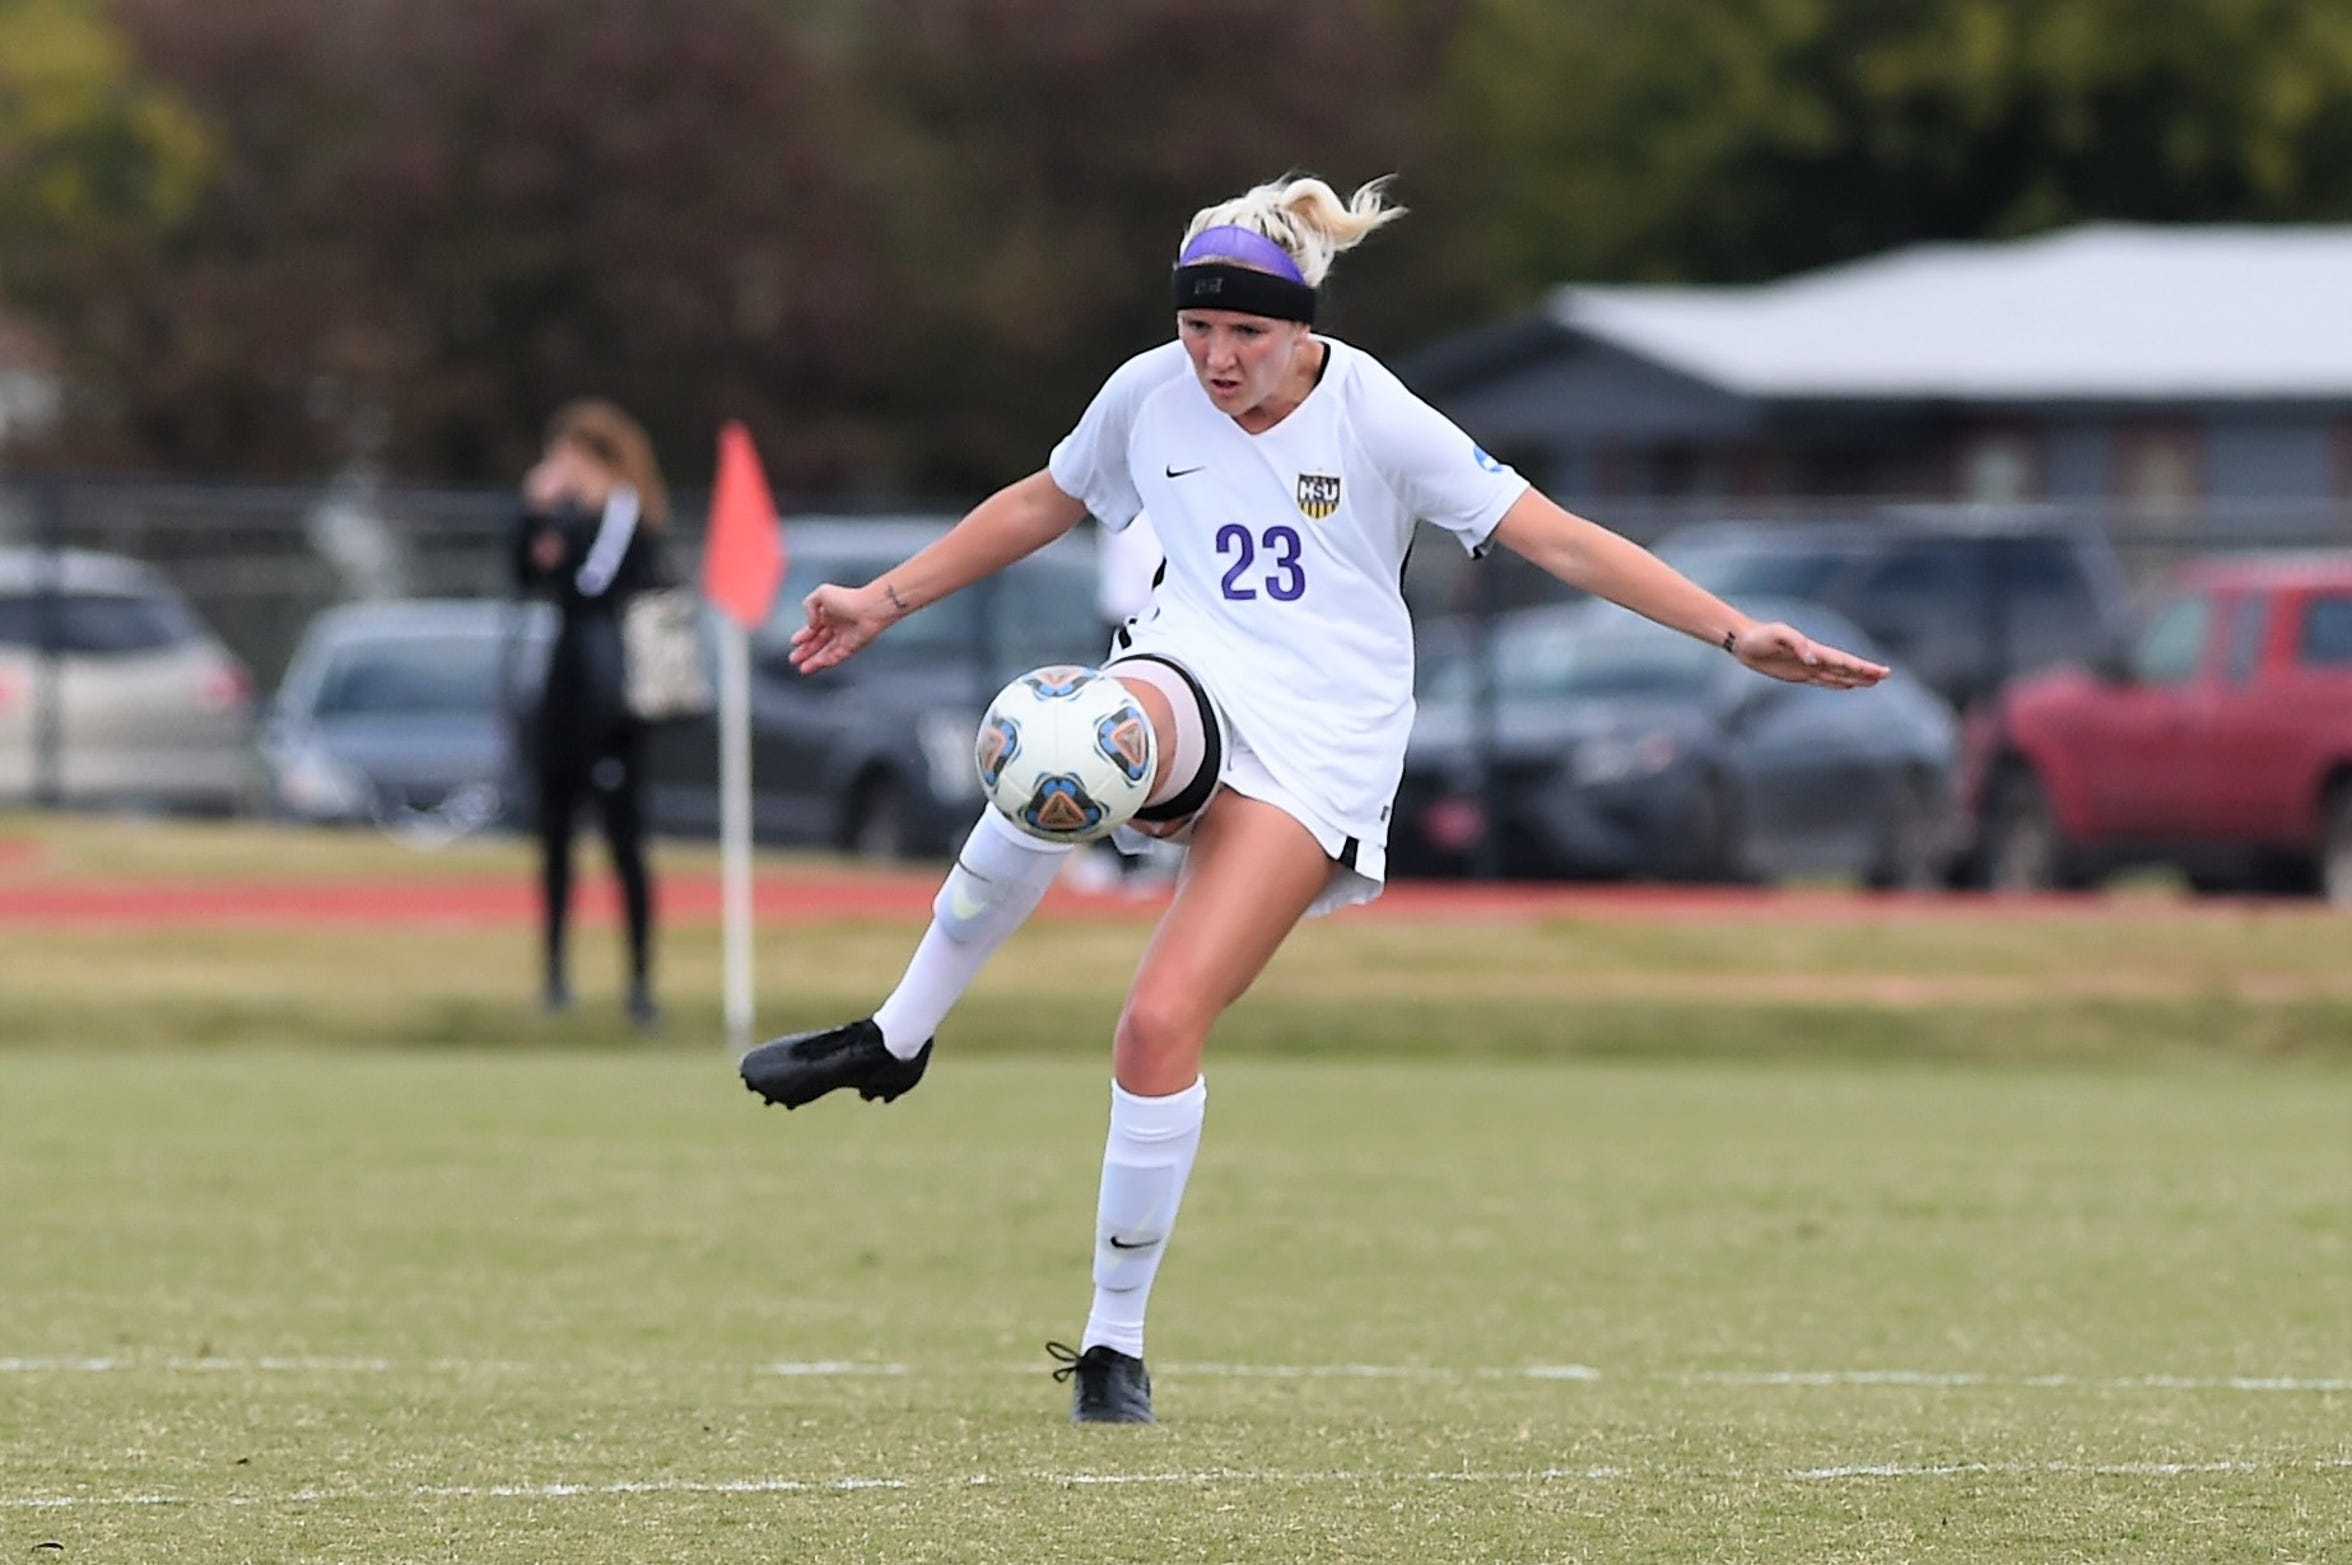 Hardin-Simmons defender Baylee Ford (23) settles the ball against Mary Hardin-Baylor in the American Southwest Conference tournament final. Ford transferred from Sam Houston State and filled a big role in the middle of the Cowgirls' back line.